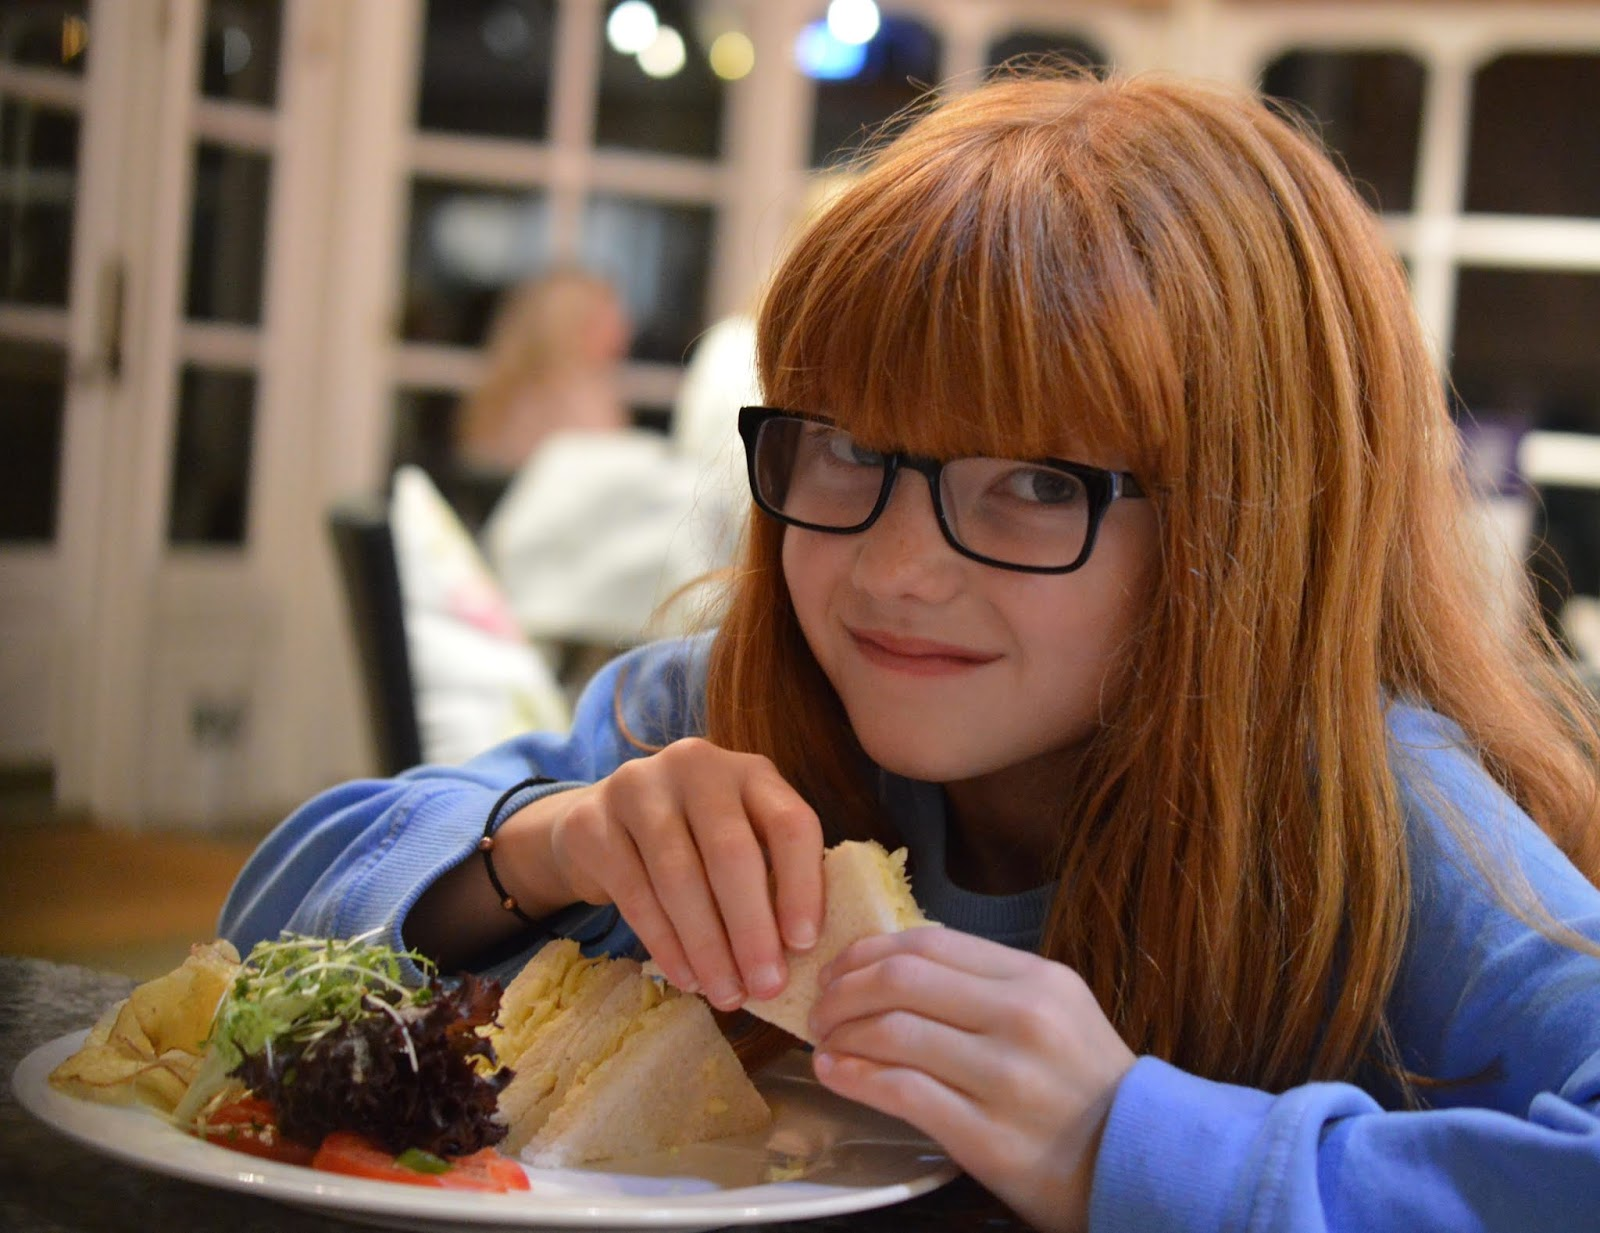 10 Reasons to Stay at Matfen Hall in Northumberland with Kids  - kids sandwiches